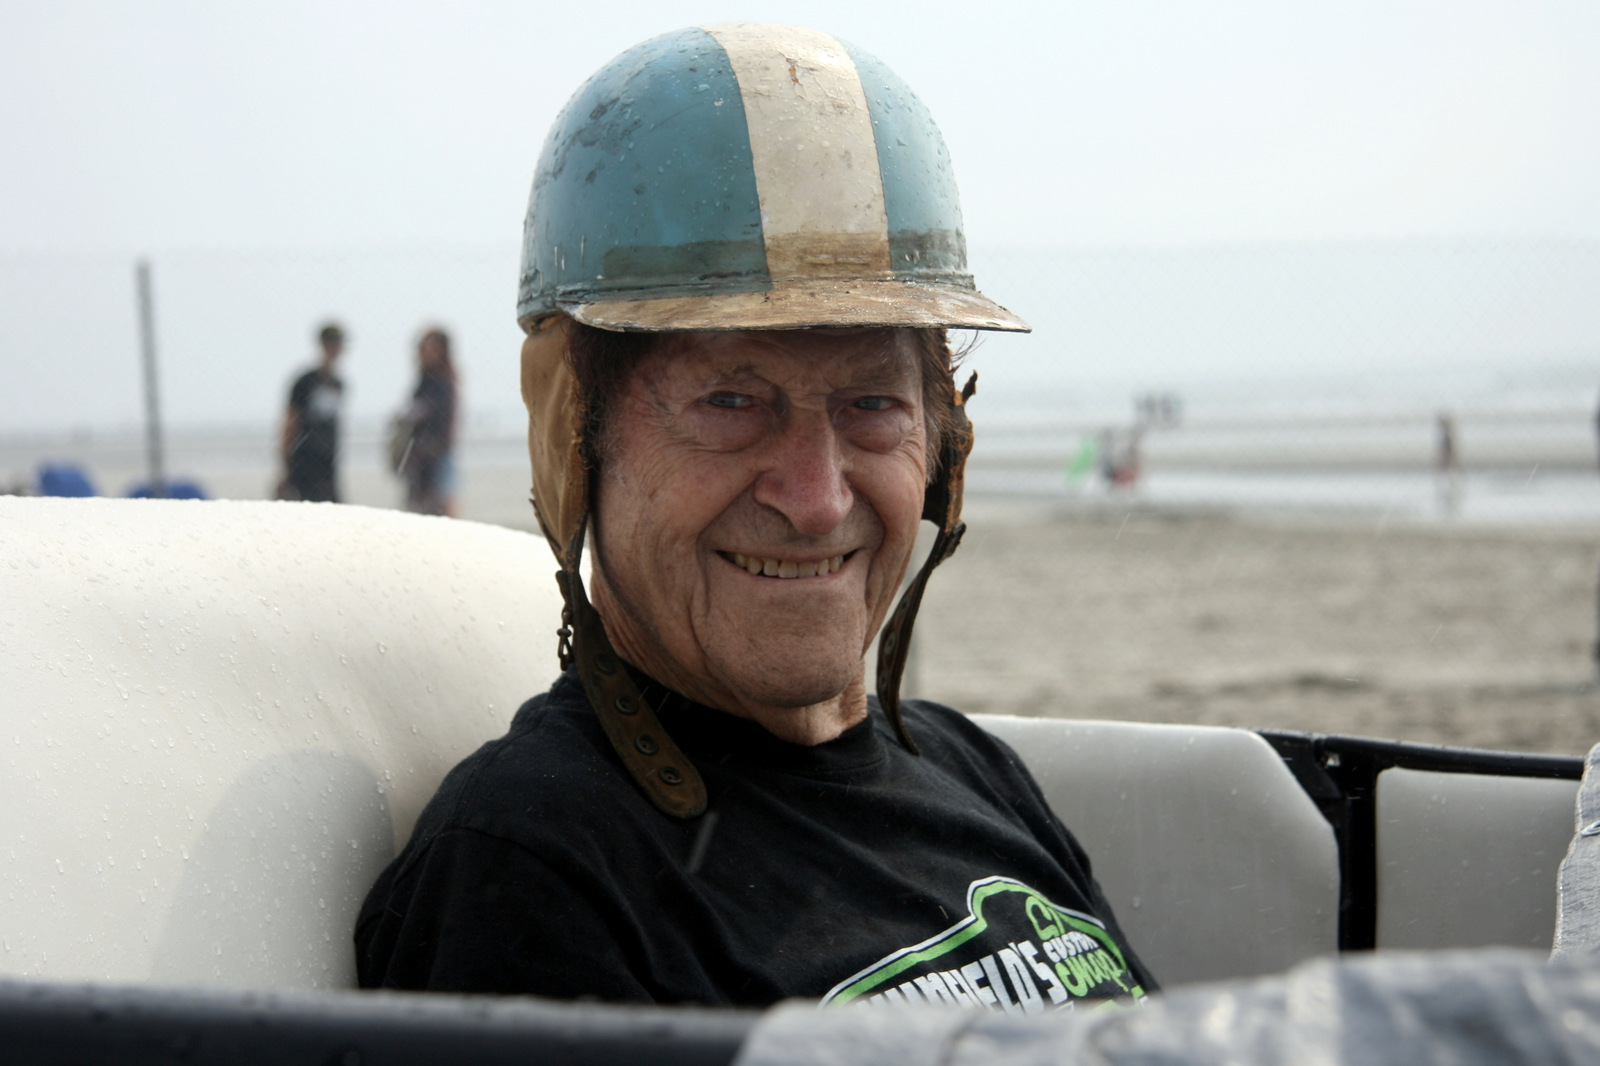 Gene Winfield has been racing on dry lakebeds out West since the 1940s.